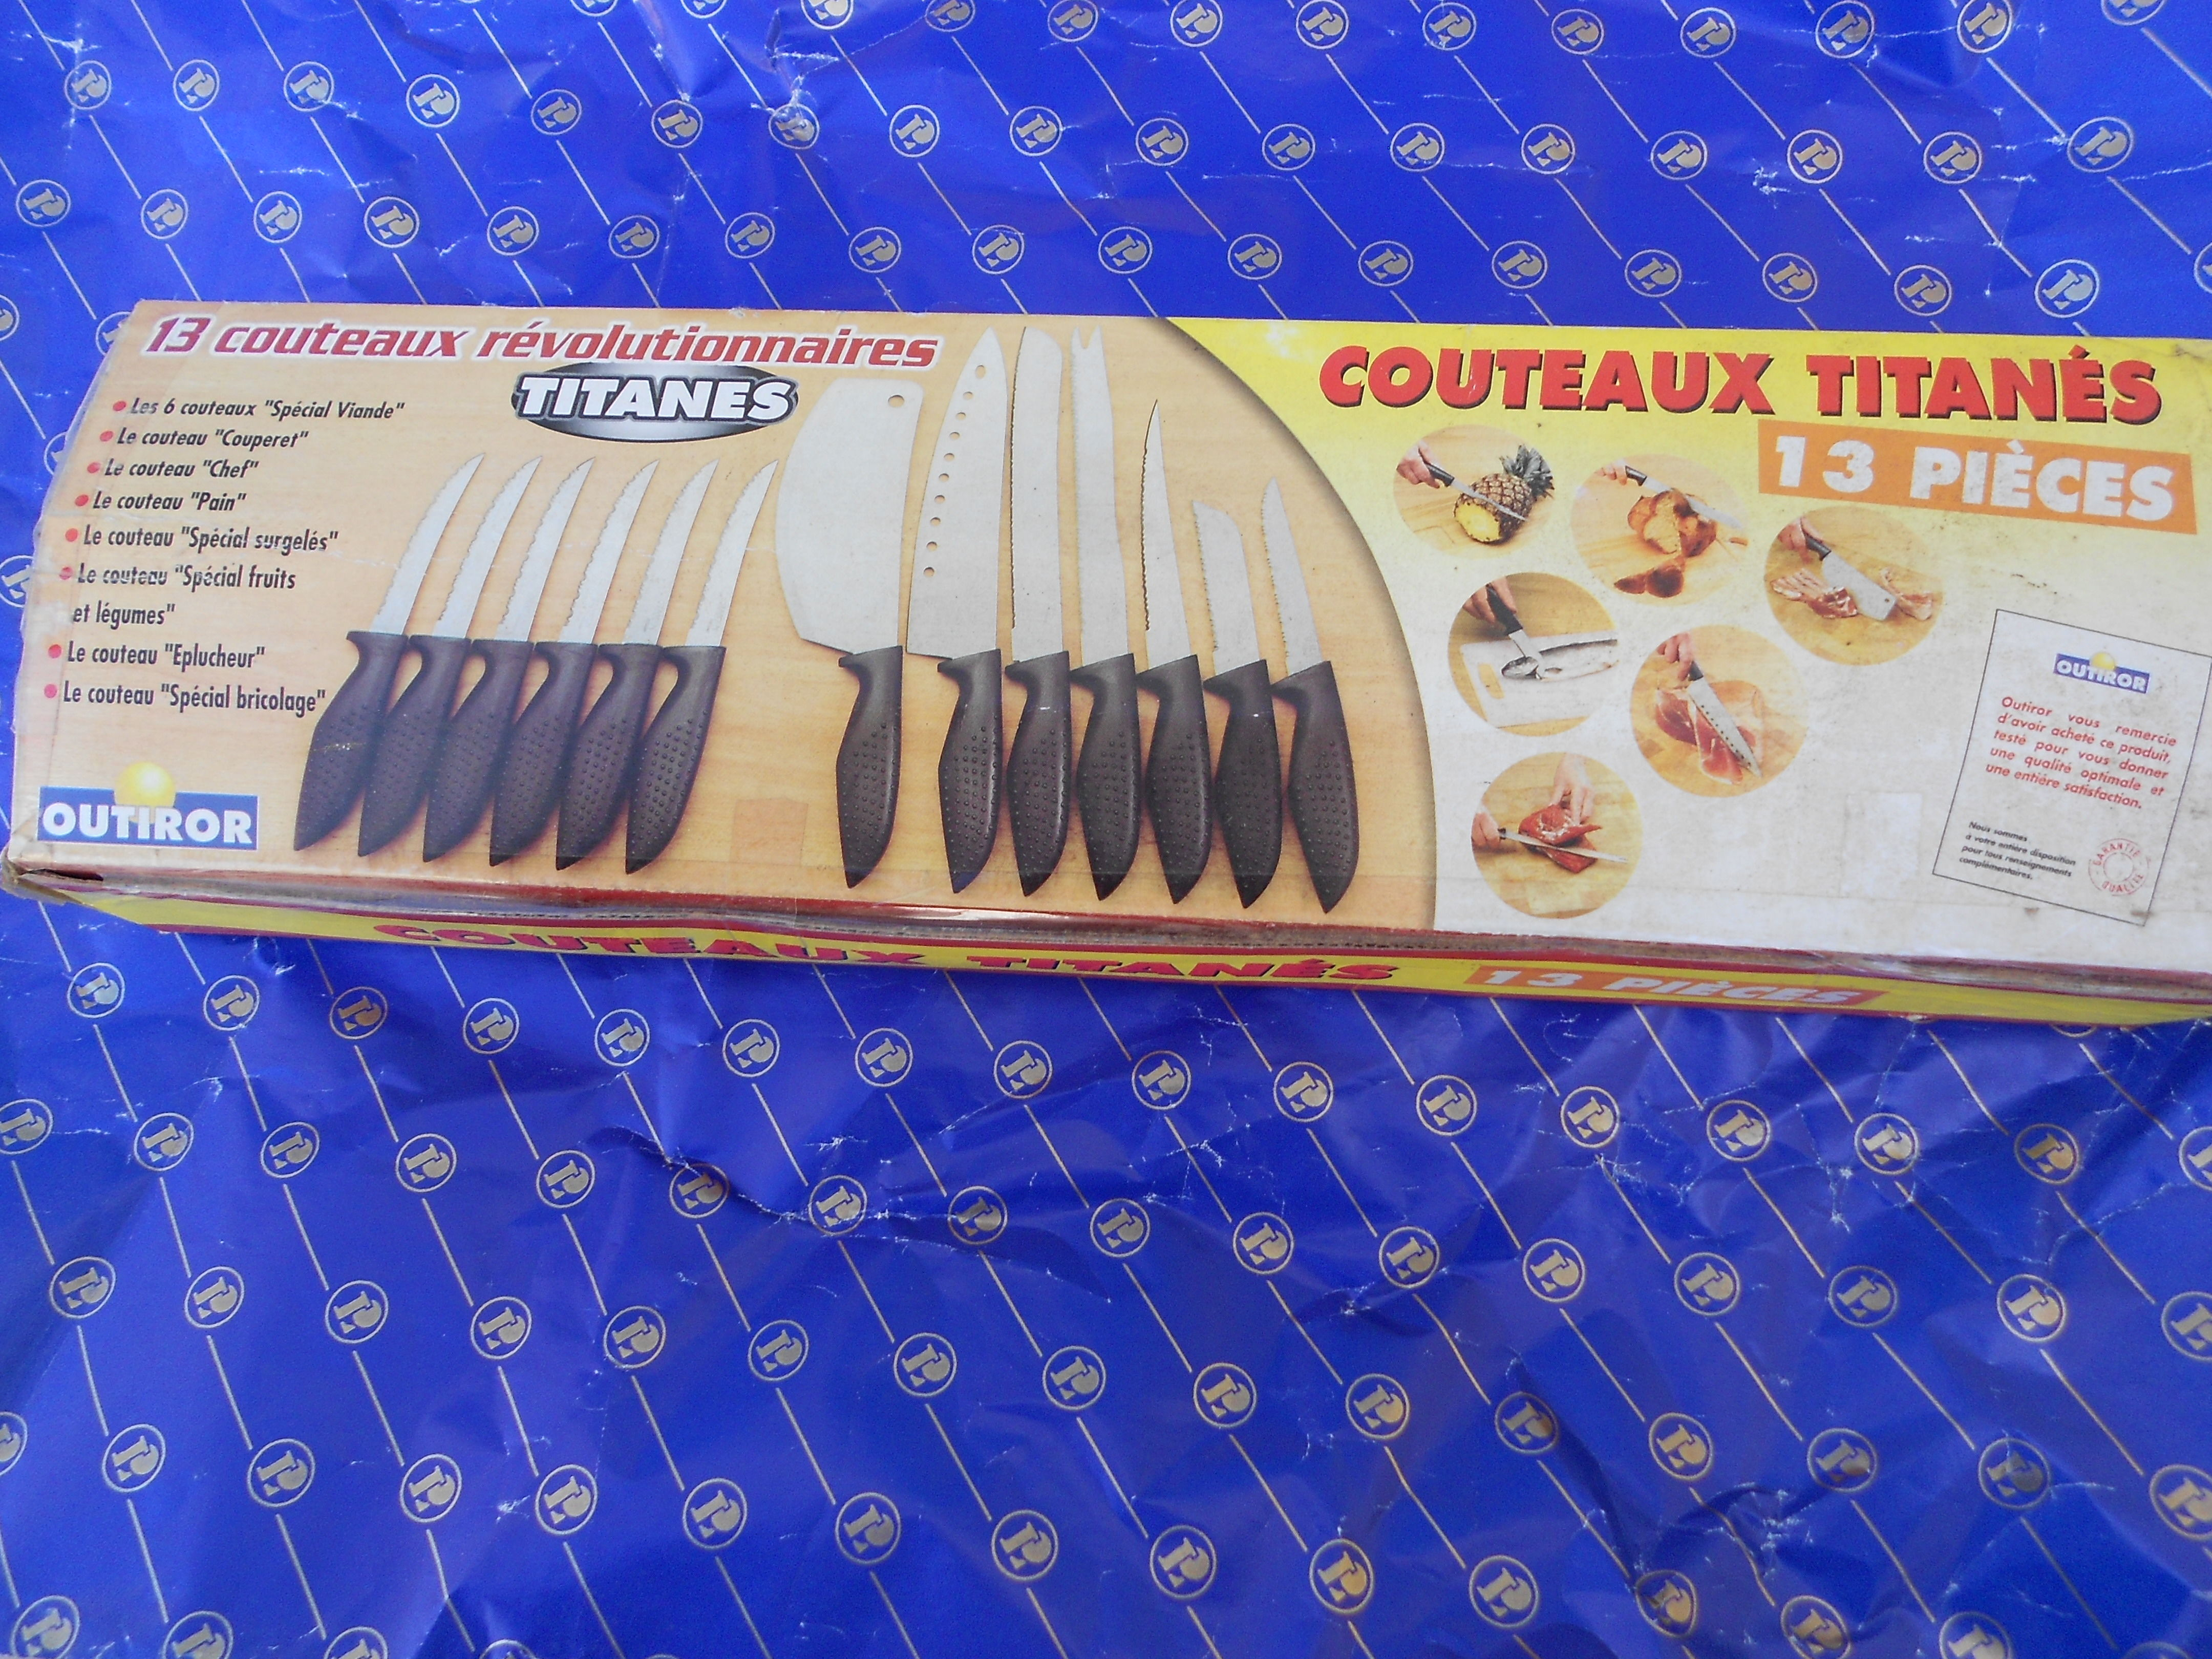 COUTEAUX TITANES NEUF 20 Chantonnay (85)